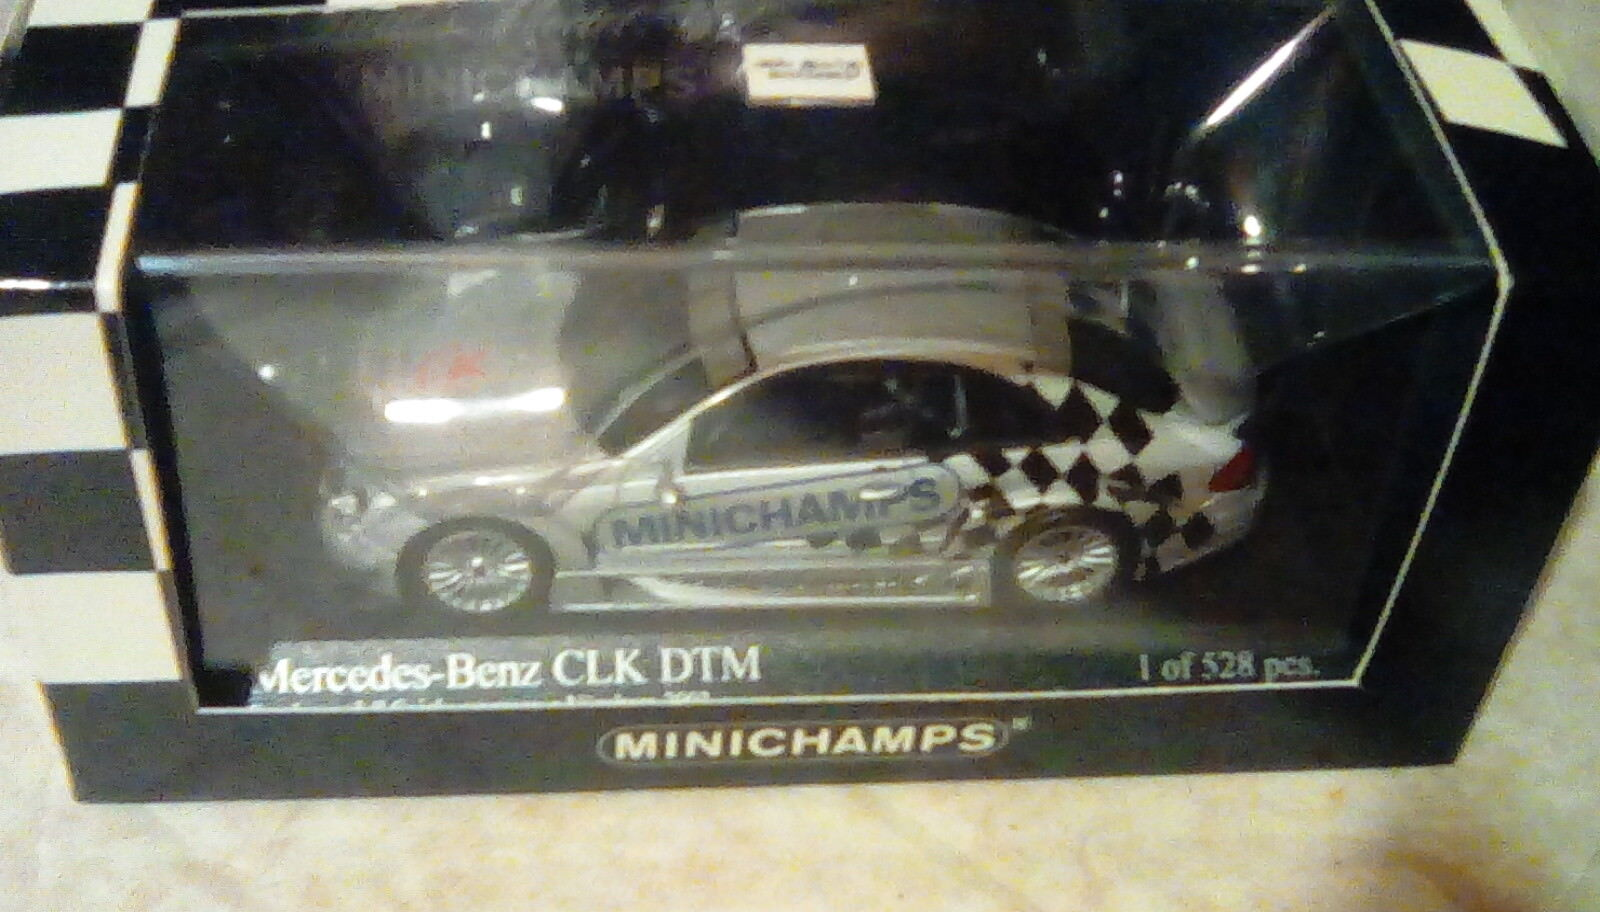 Escaso Minichamps Mercedes CLK DTM messemodell Nuremberg Toyfair 1 43 1 528 2003